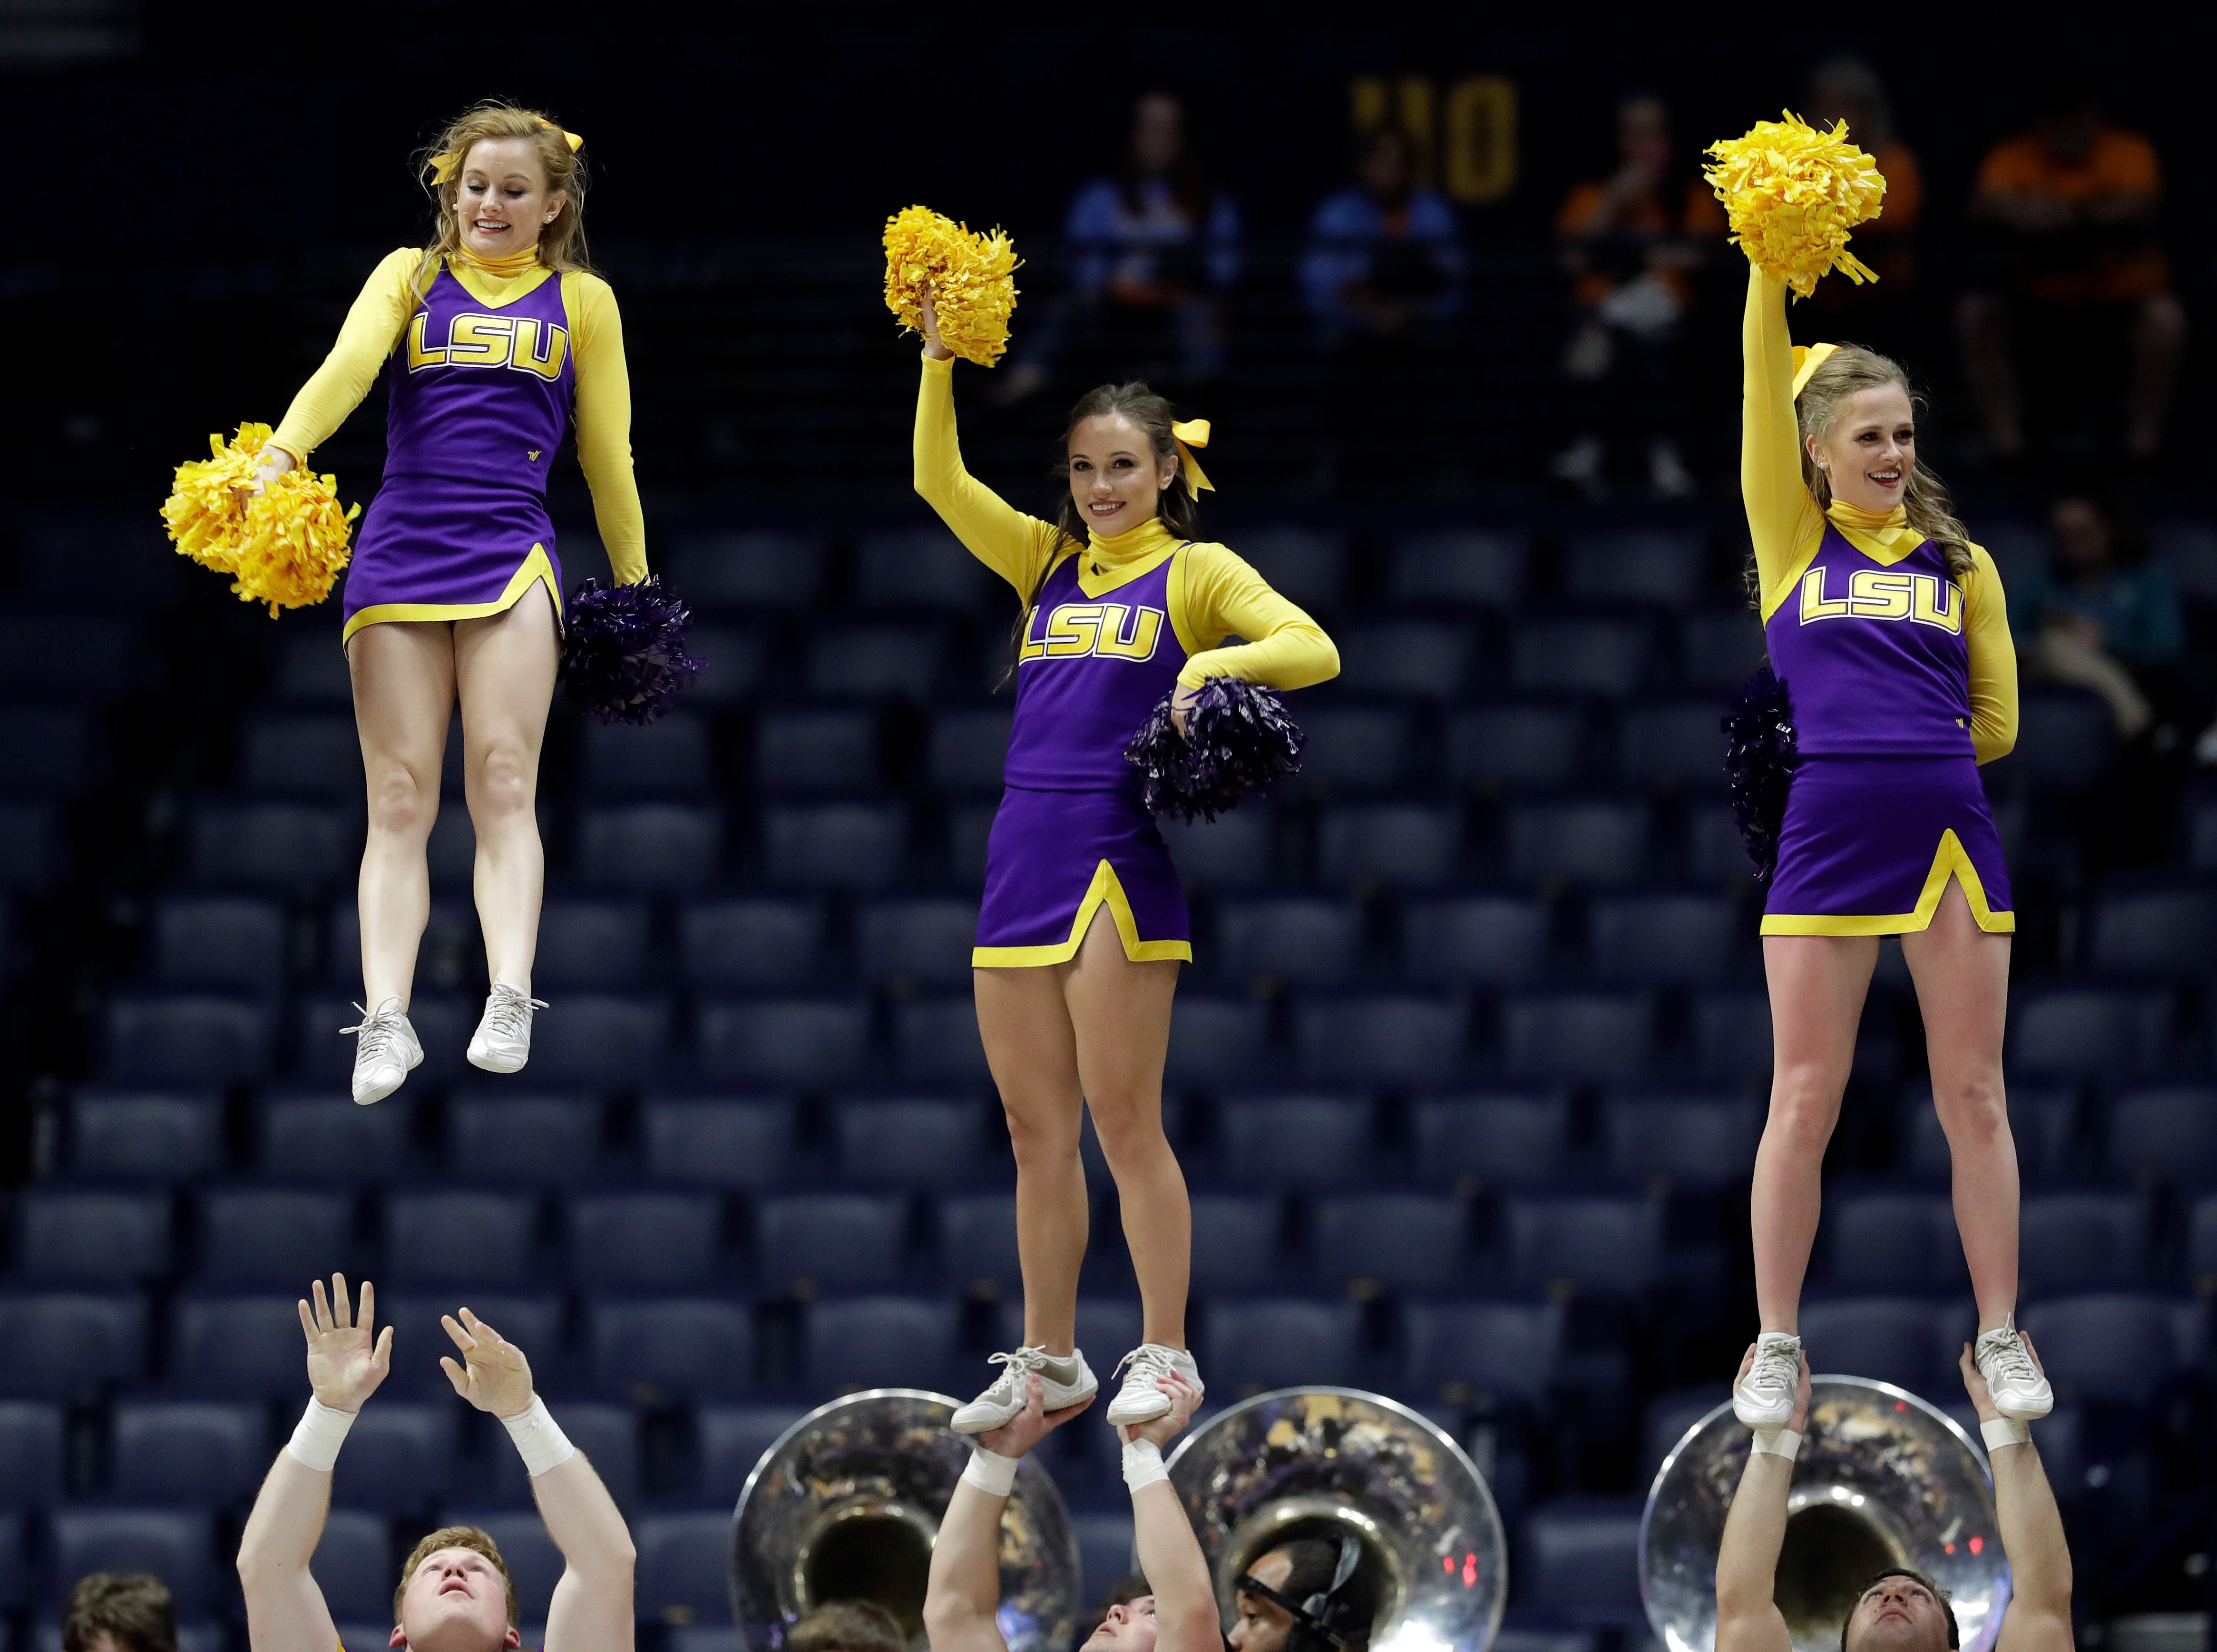 LSU cheerleaders perform during an NCAA college basketball game against Texas A&M at the women's Southeastern Conference tournament Friday, March 2, 2018, in Nashville, Tenn. Texas A&M won 75-69. (AP Photo/Mark Humphrey)